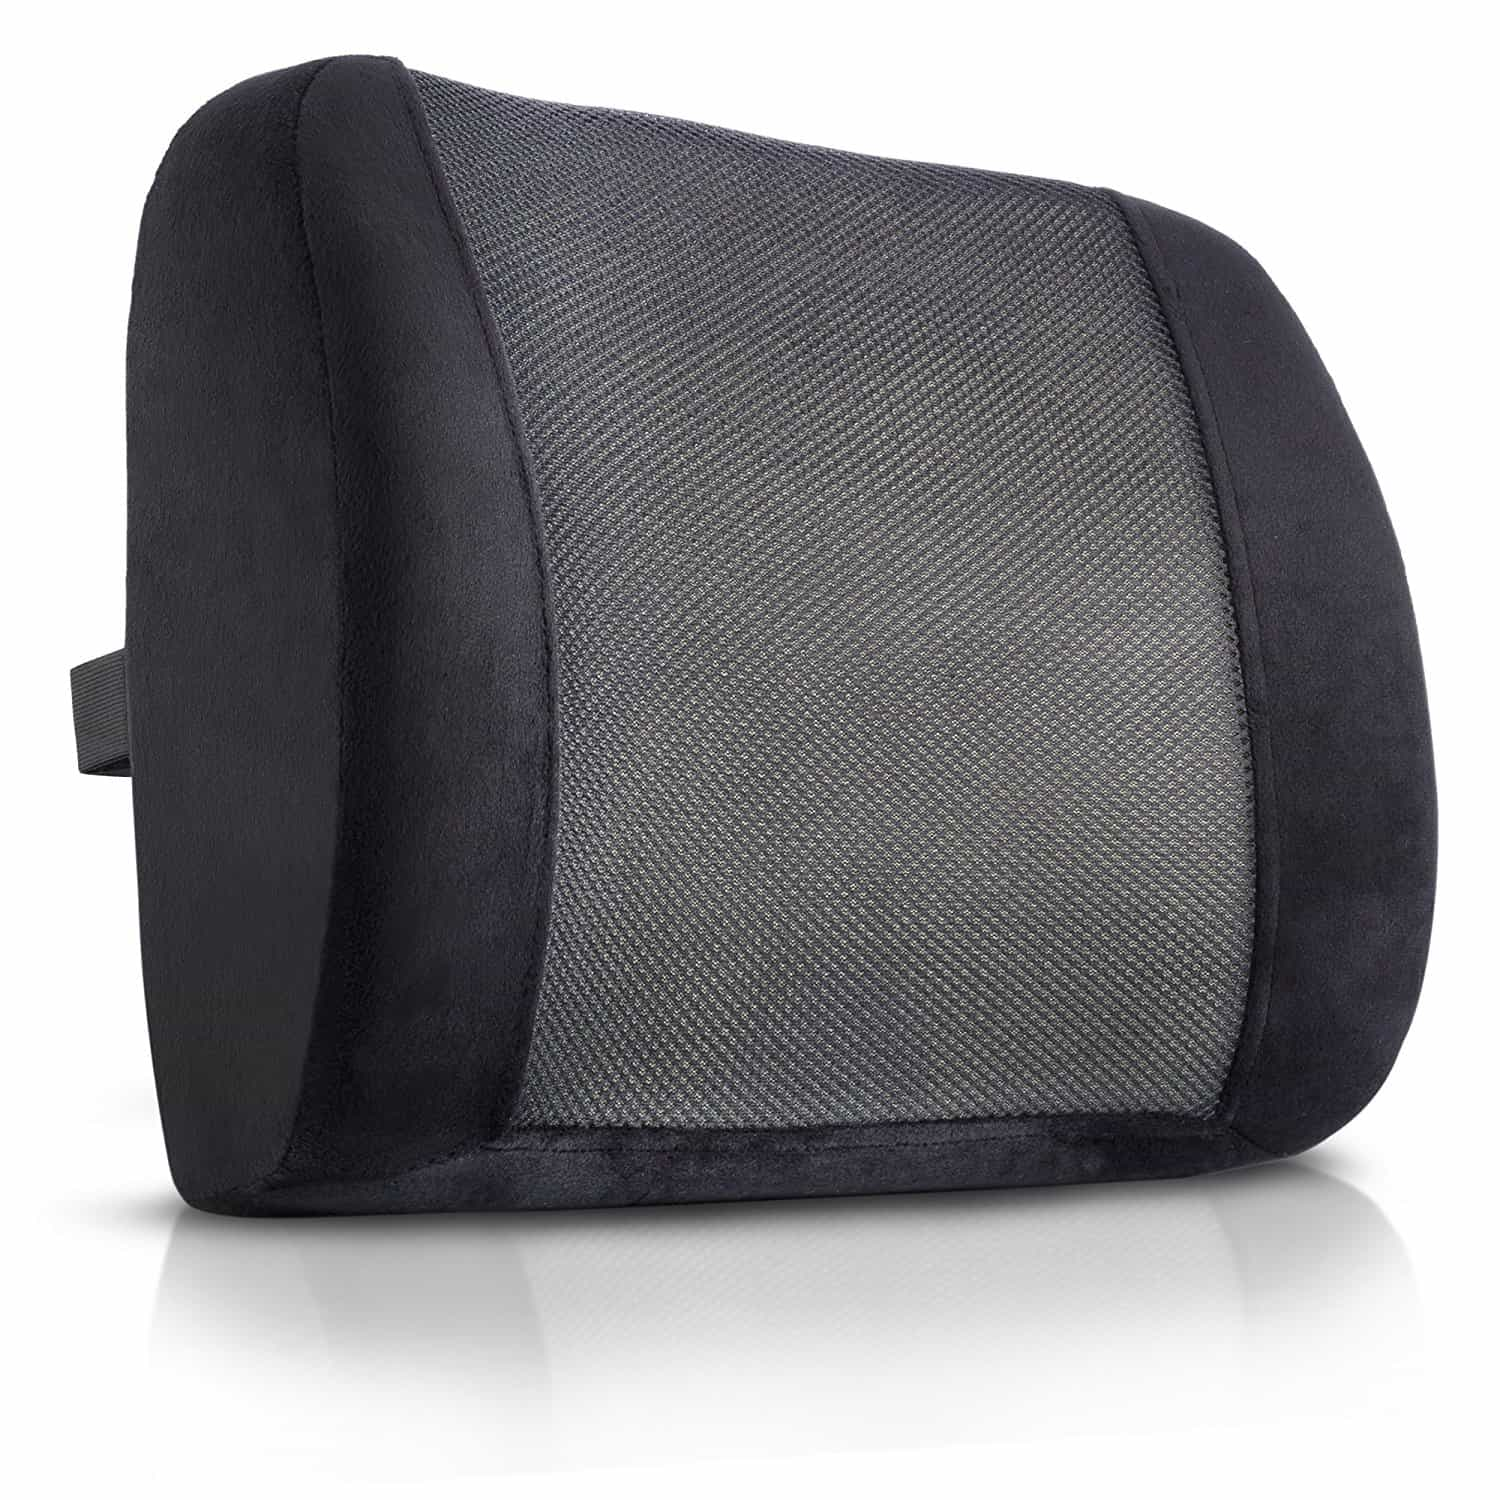 Lower Back Support For Office Chair Best Lumbar Support For Car 2018 Lower Back Pain Back